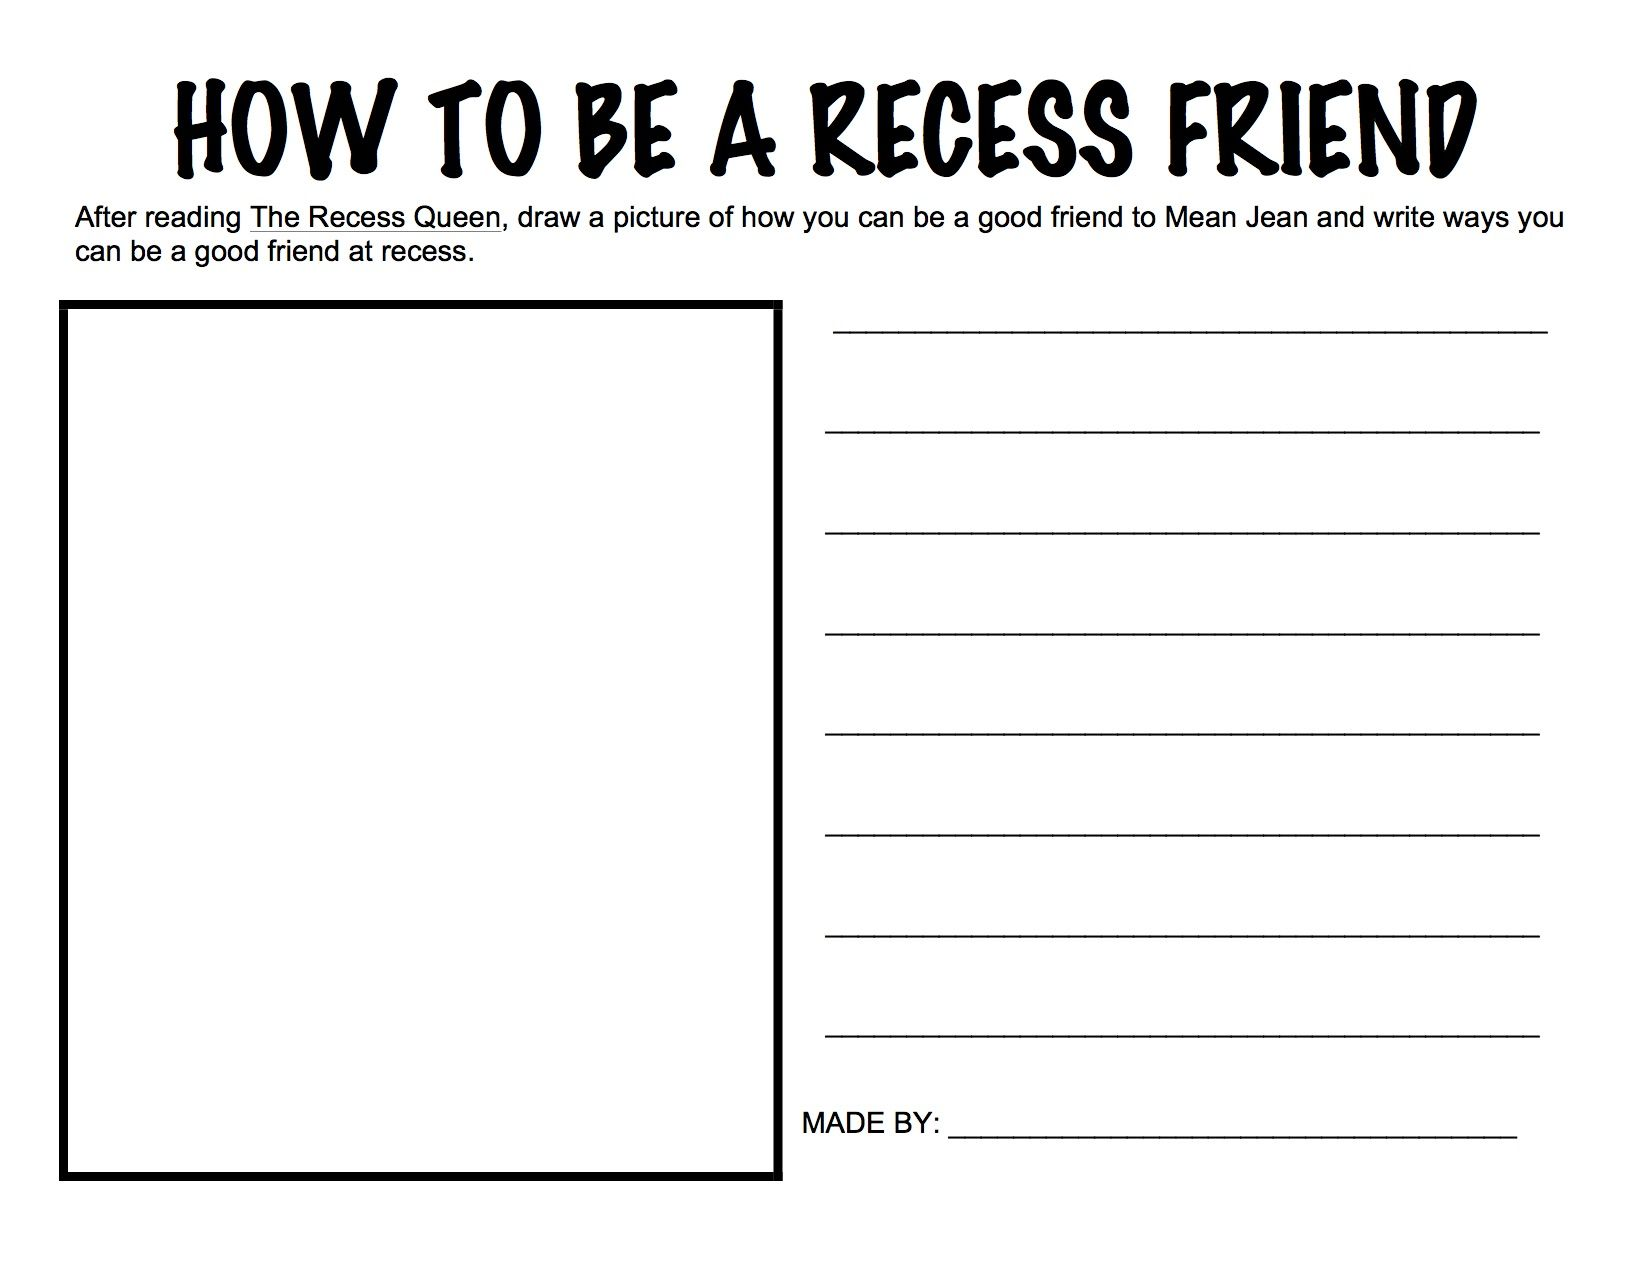 Activity For The Recess Queen For Project Cornerstone Adapted By Kathryn Harper